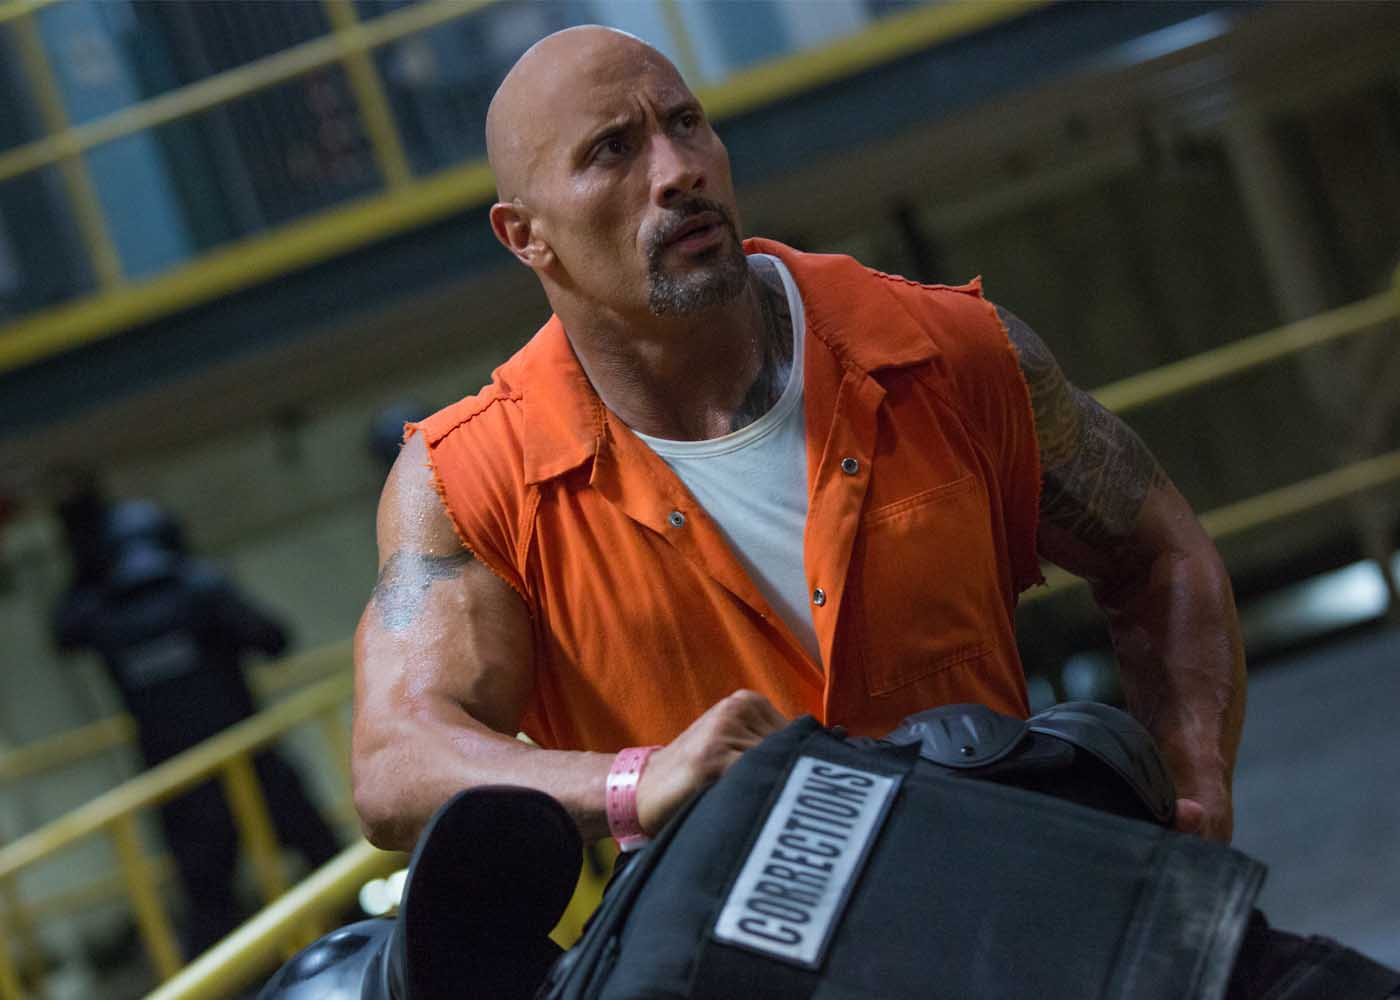 Box Office: Fate of the Furious Speeds Past $1 Billion Worldwide; Baahubali 2 and How to be a Latin Lover Trample The Circle